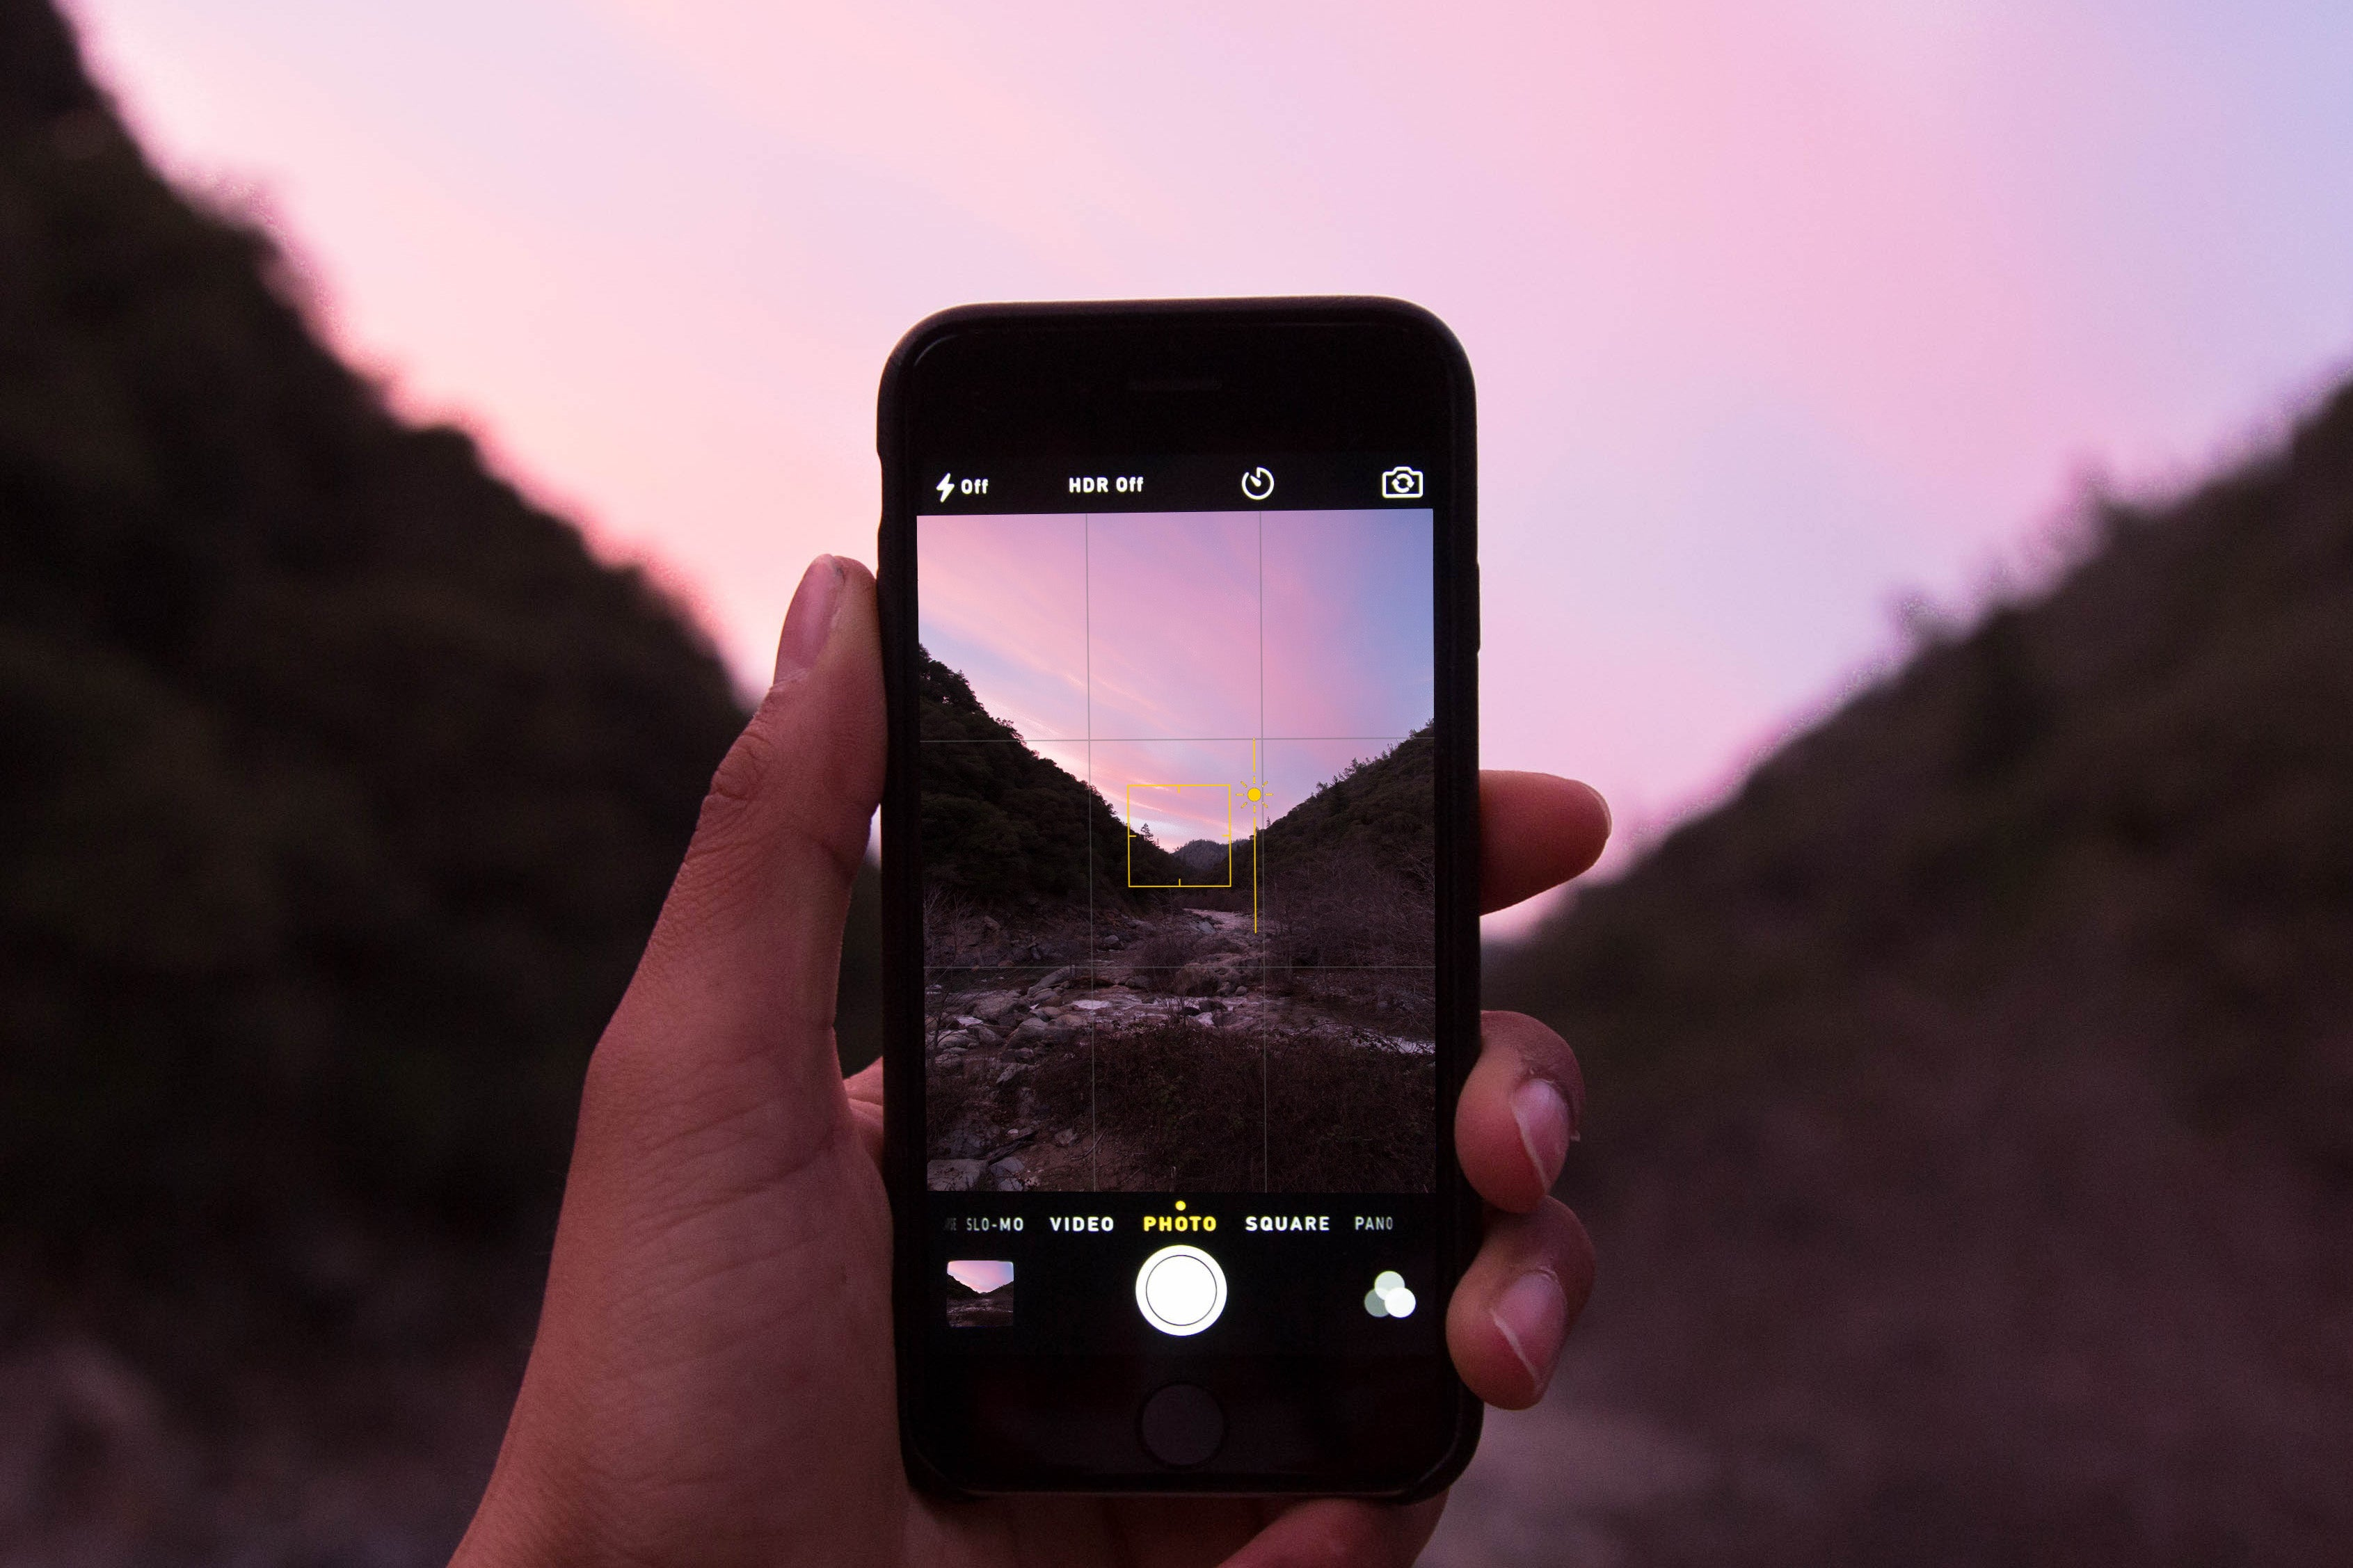 Take better hiking photos with your iPhone by adjusting the brightness